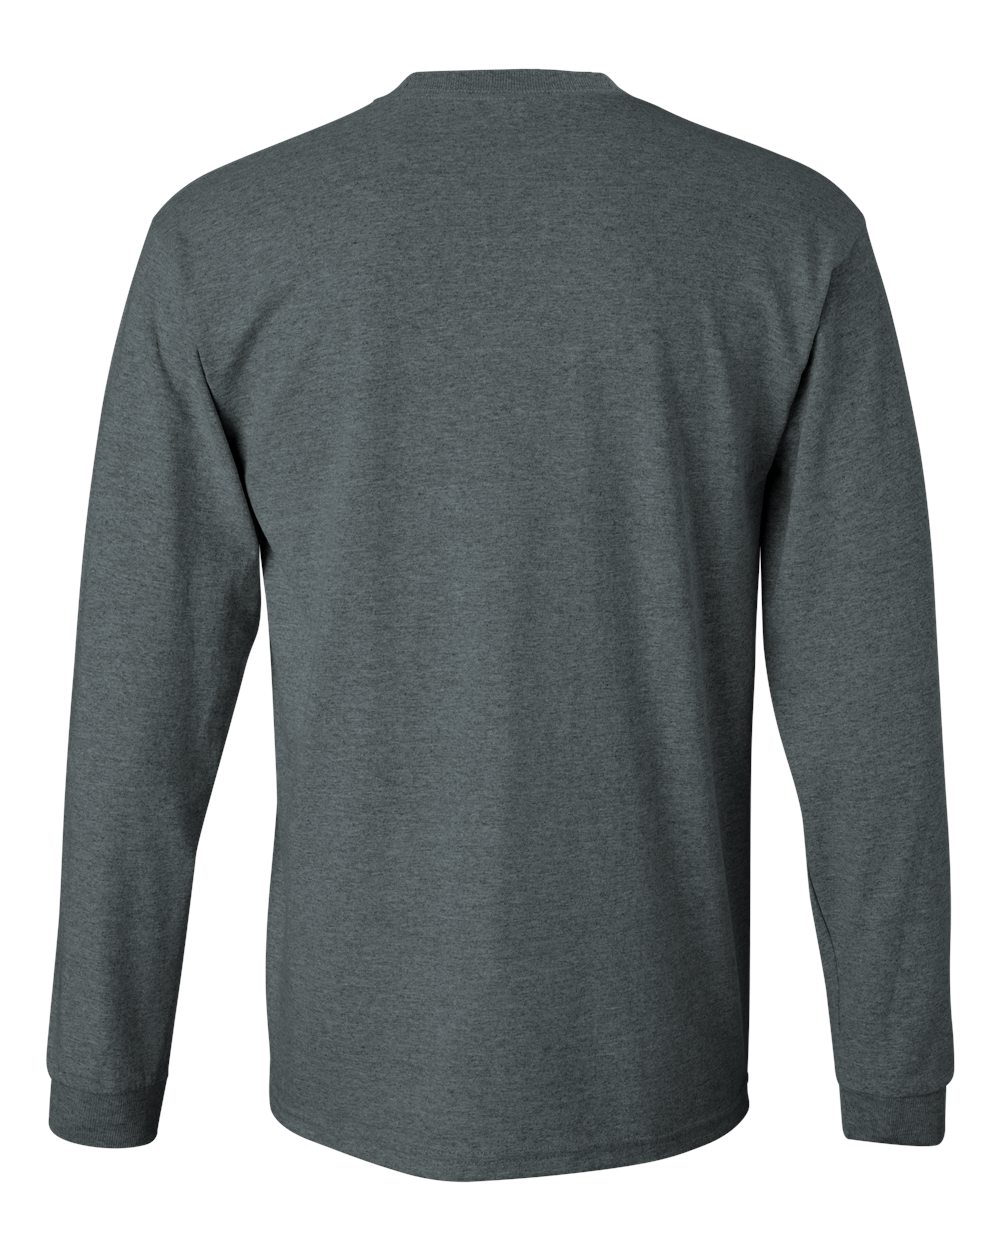 Gildan-Men-039-s-Ultra-Cotton-6-oz-Long-Sleeve-T-Shirt-G240-S-5XL thumbnail 28